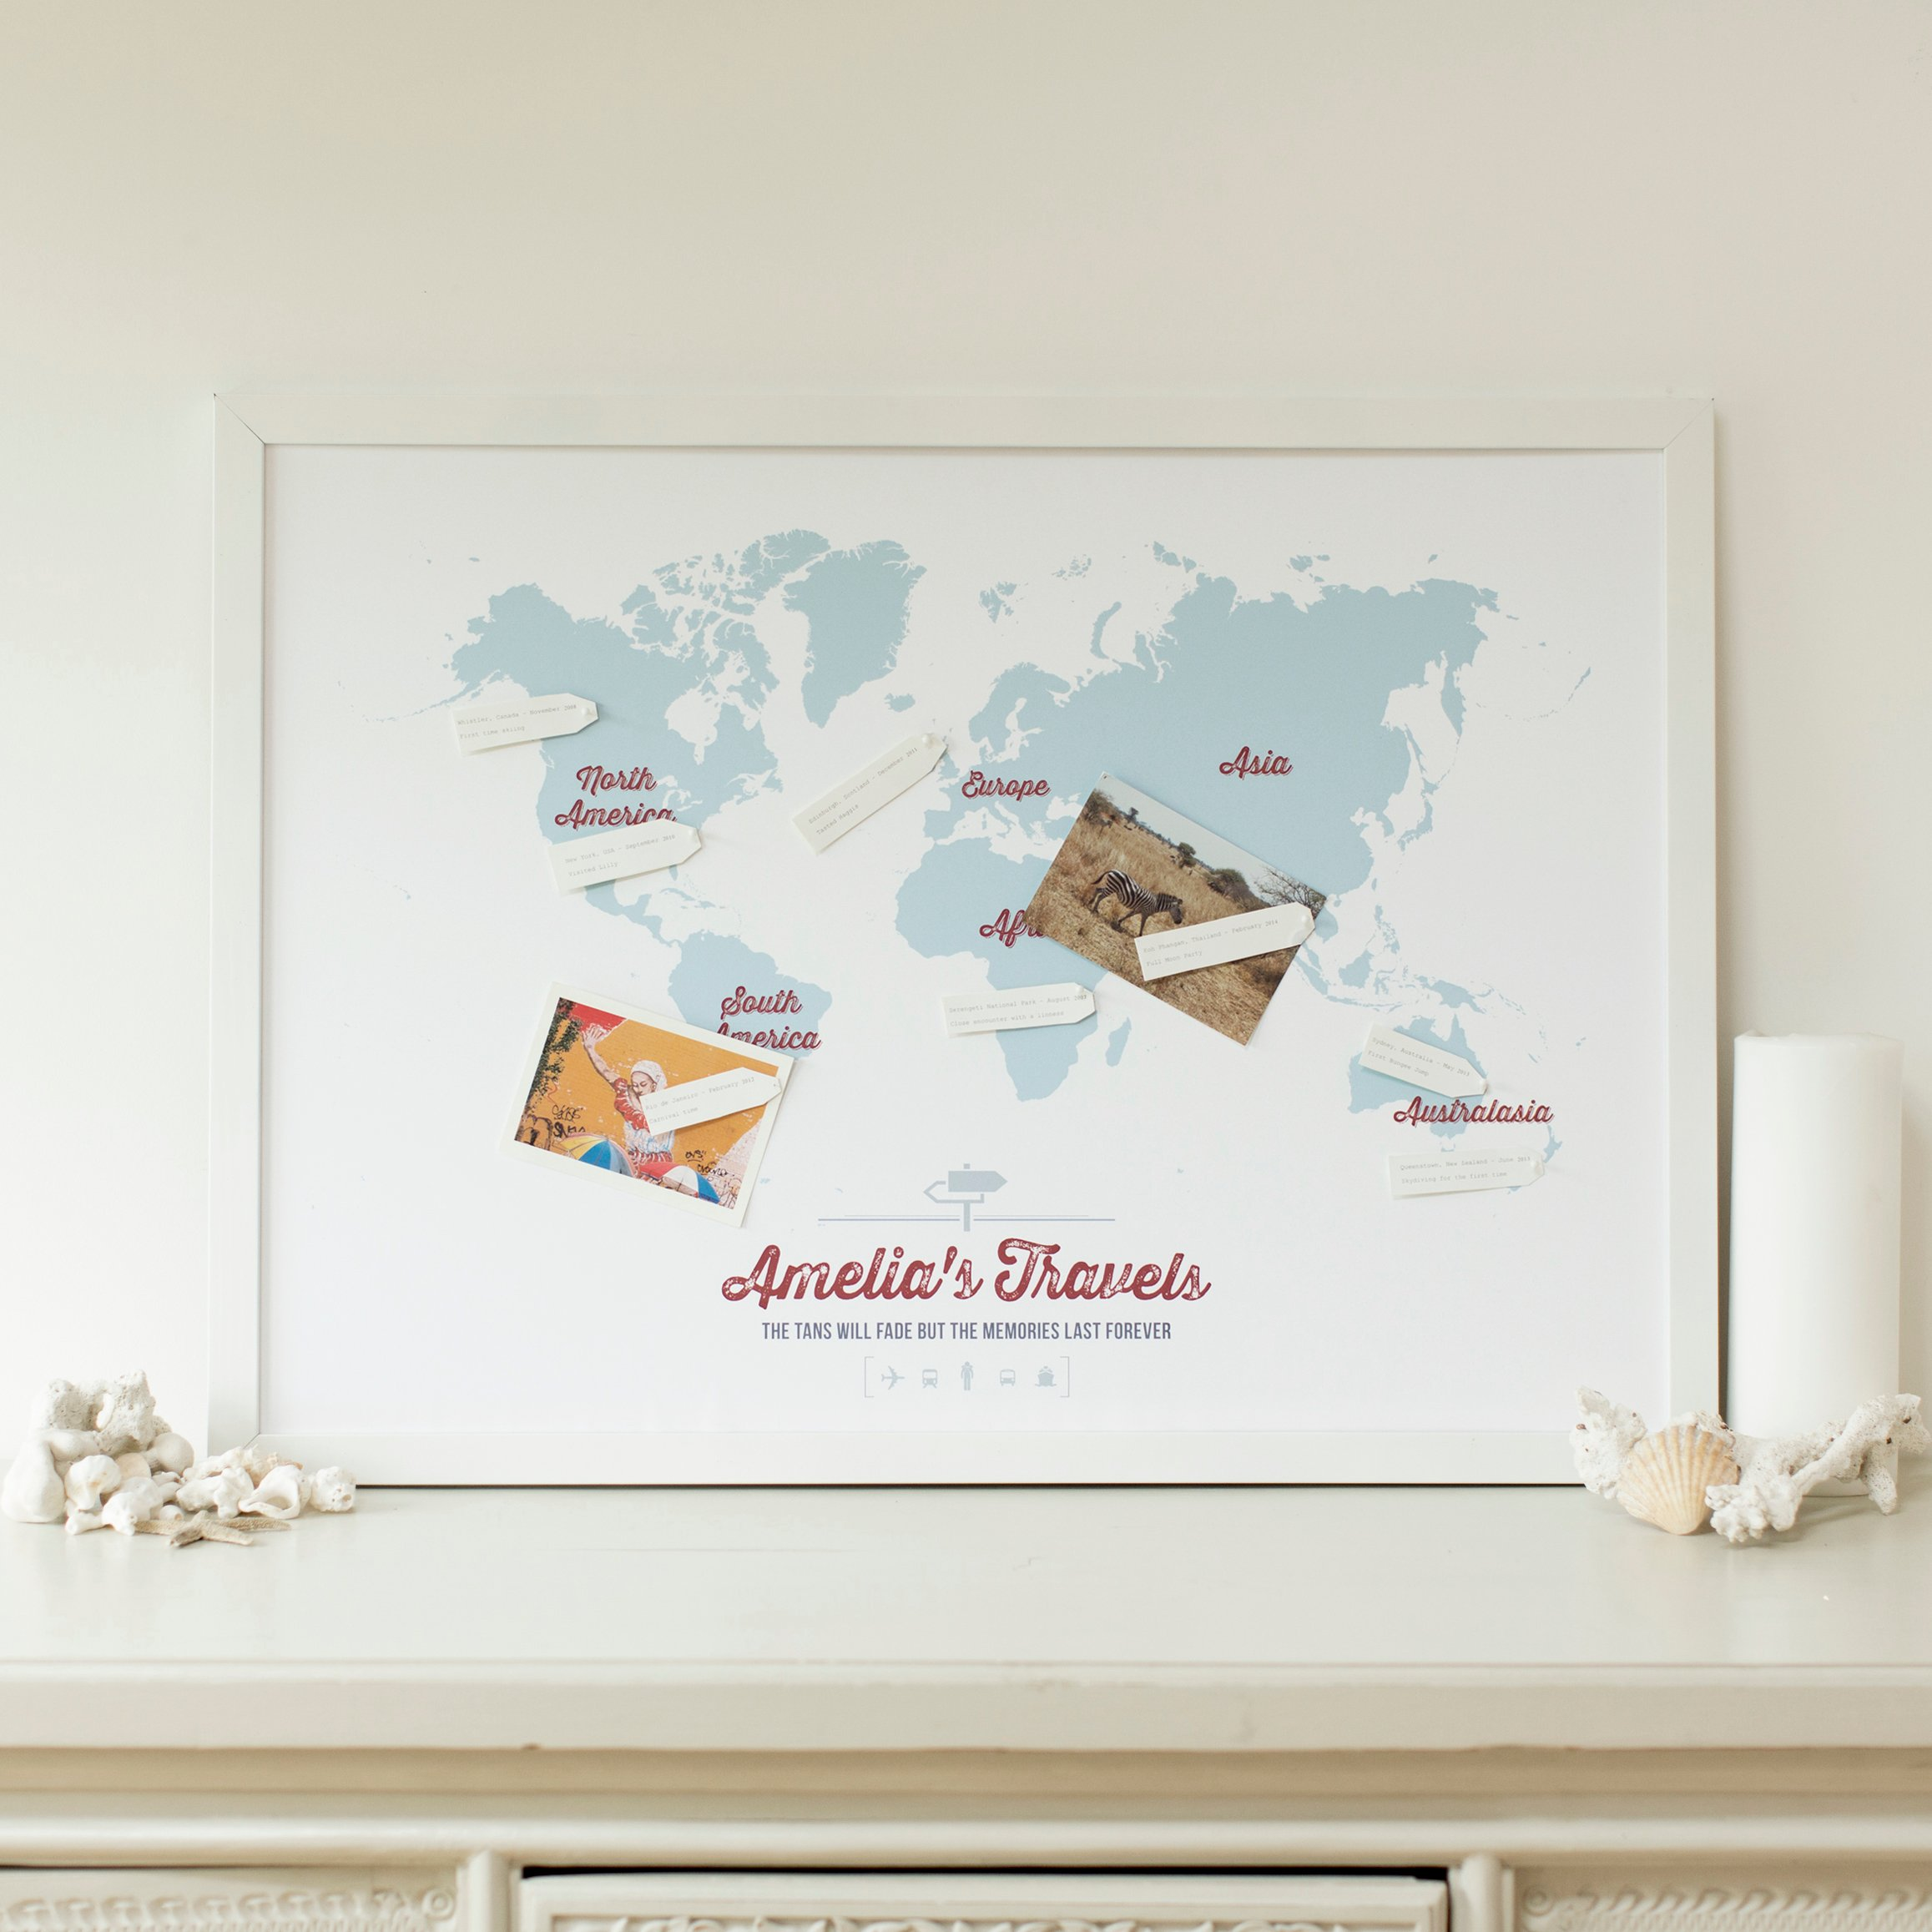 Personalise Your World And Create Your Own Travel Story This Summer - Make your own travel map